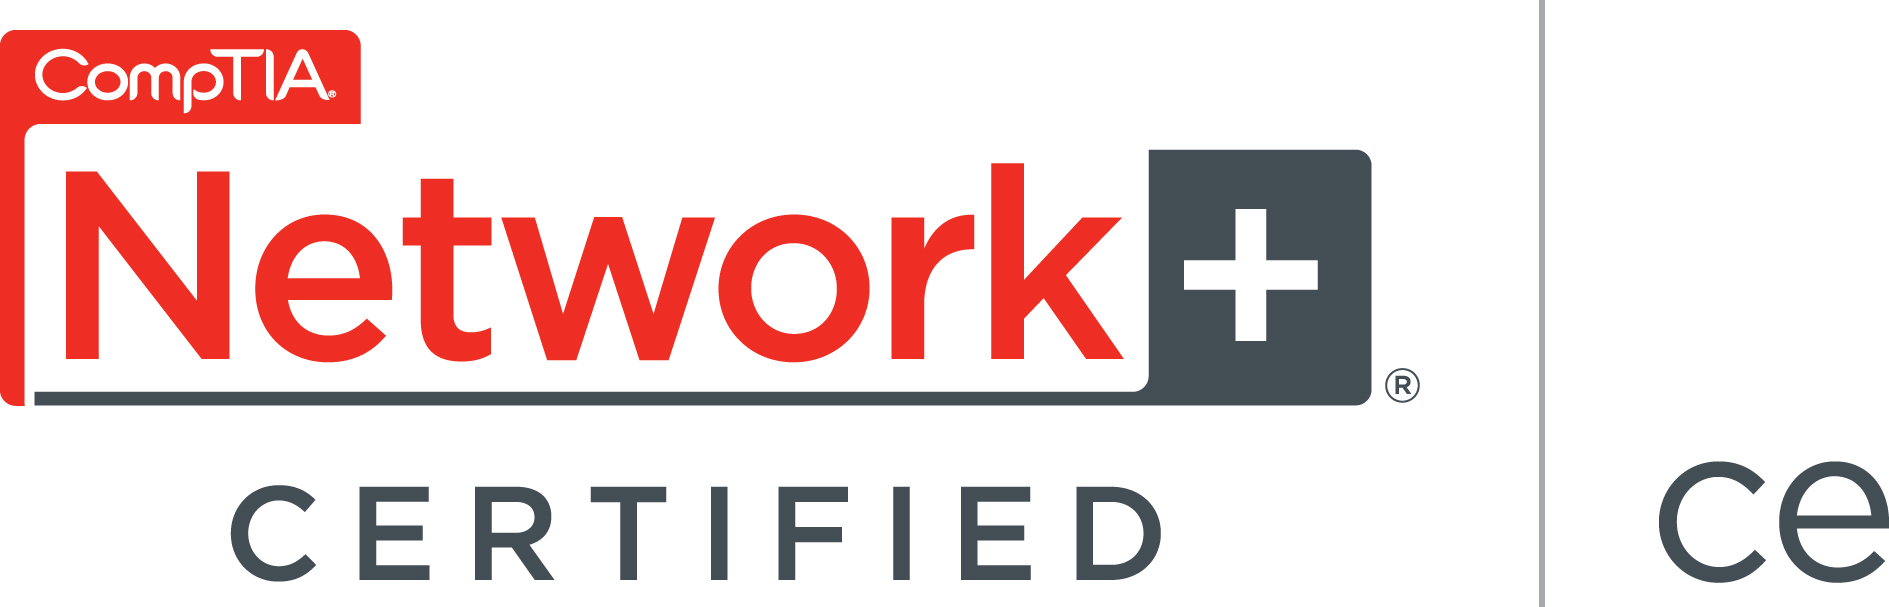 CompTIA Network+ Certifed logo